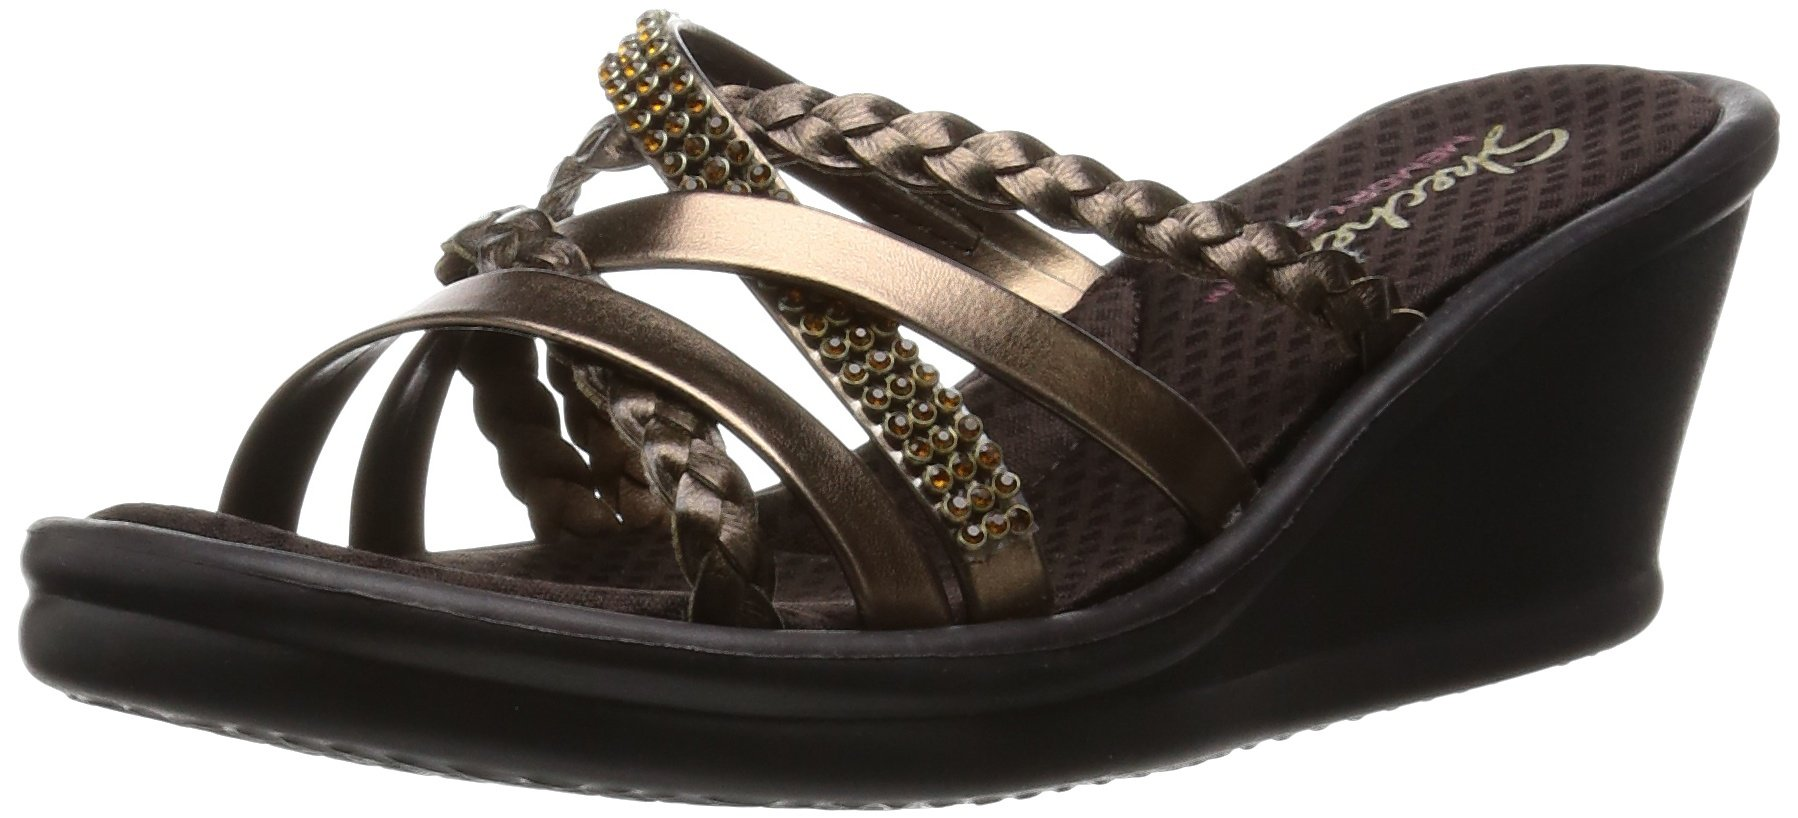 Skechers Cali Women's Rumblers Wild Child-Social Butterfly Wedge Sandal,Bronze Rhinestone,7 M US